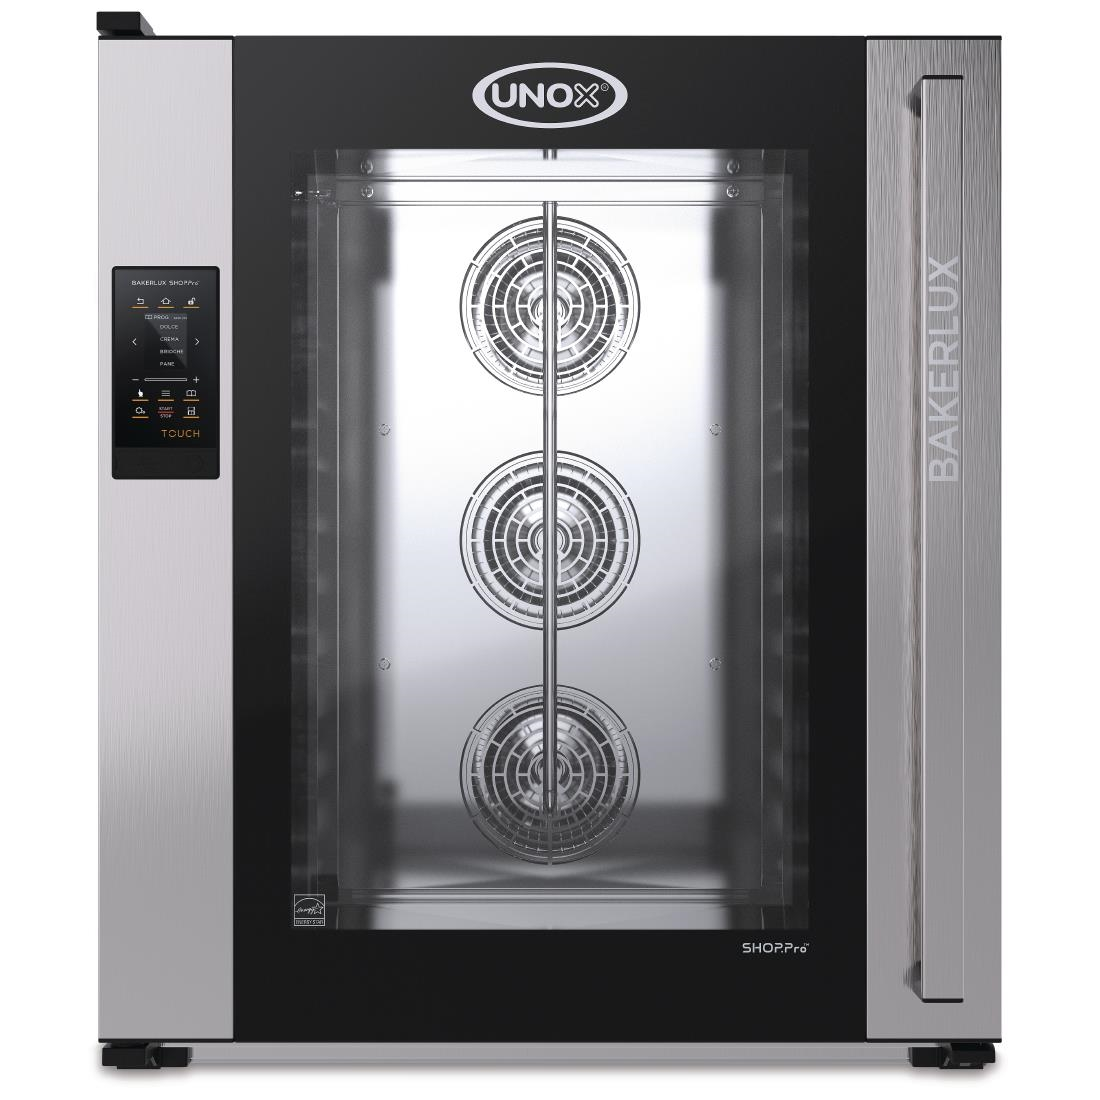 Unox Bakerlux SHOP Pro Camilla Matic Touch 10 Grid Convection Oven